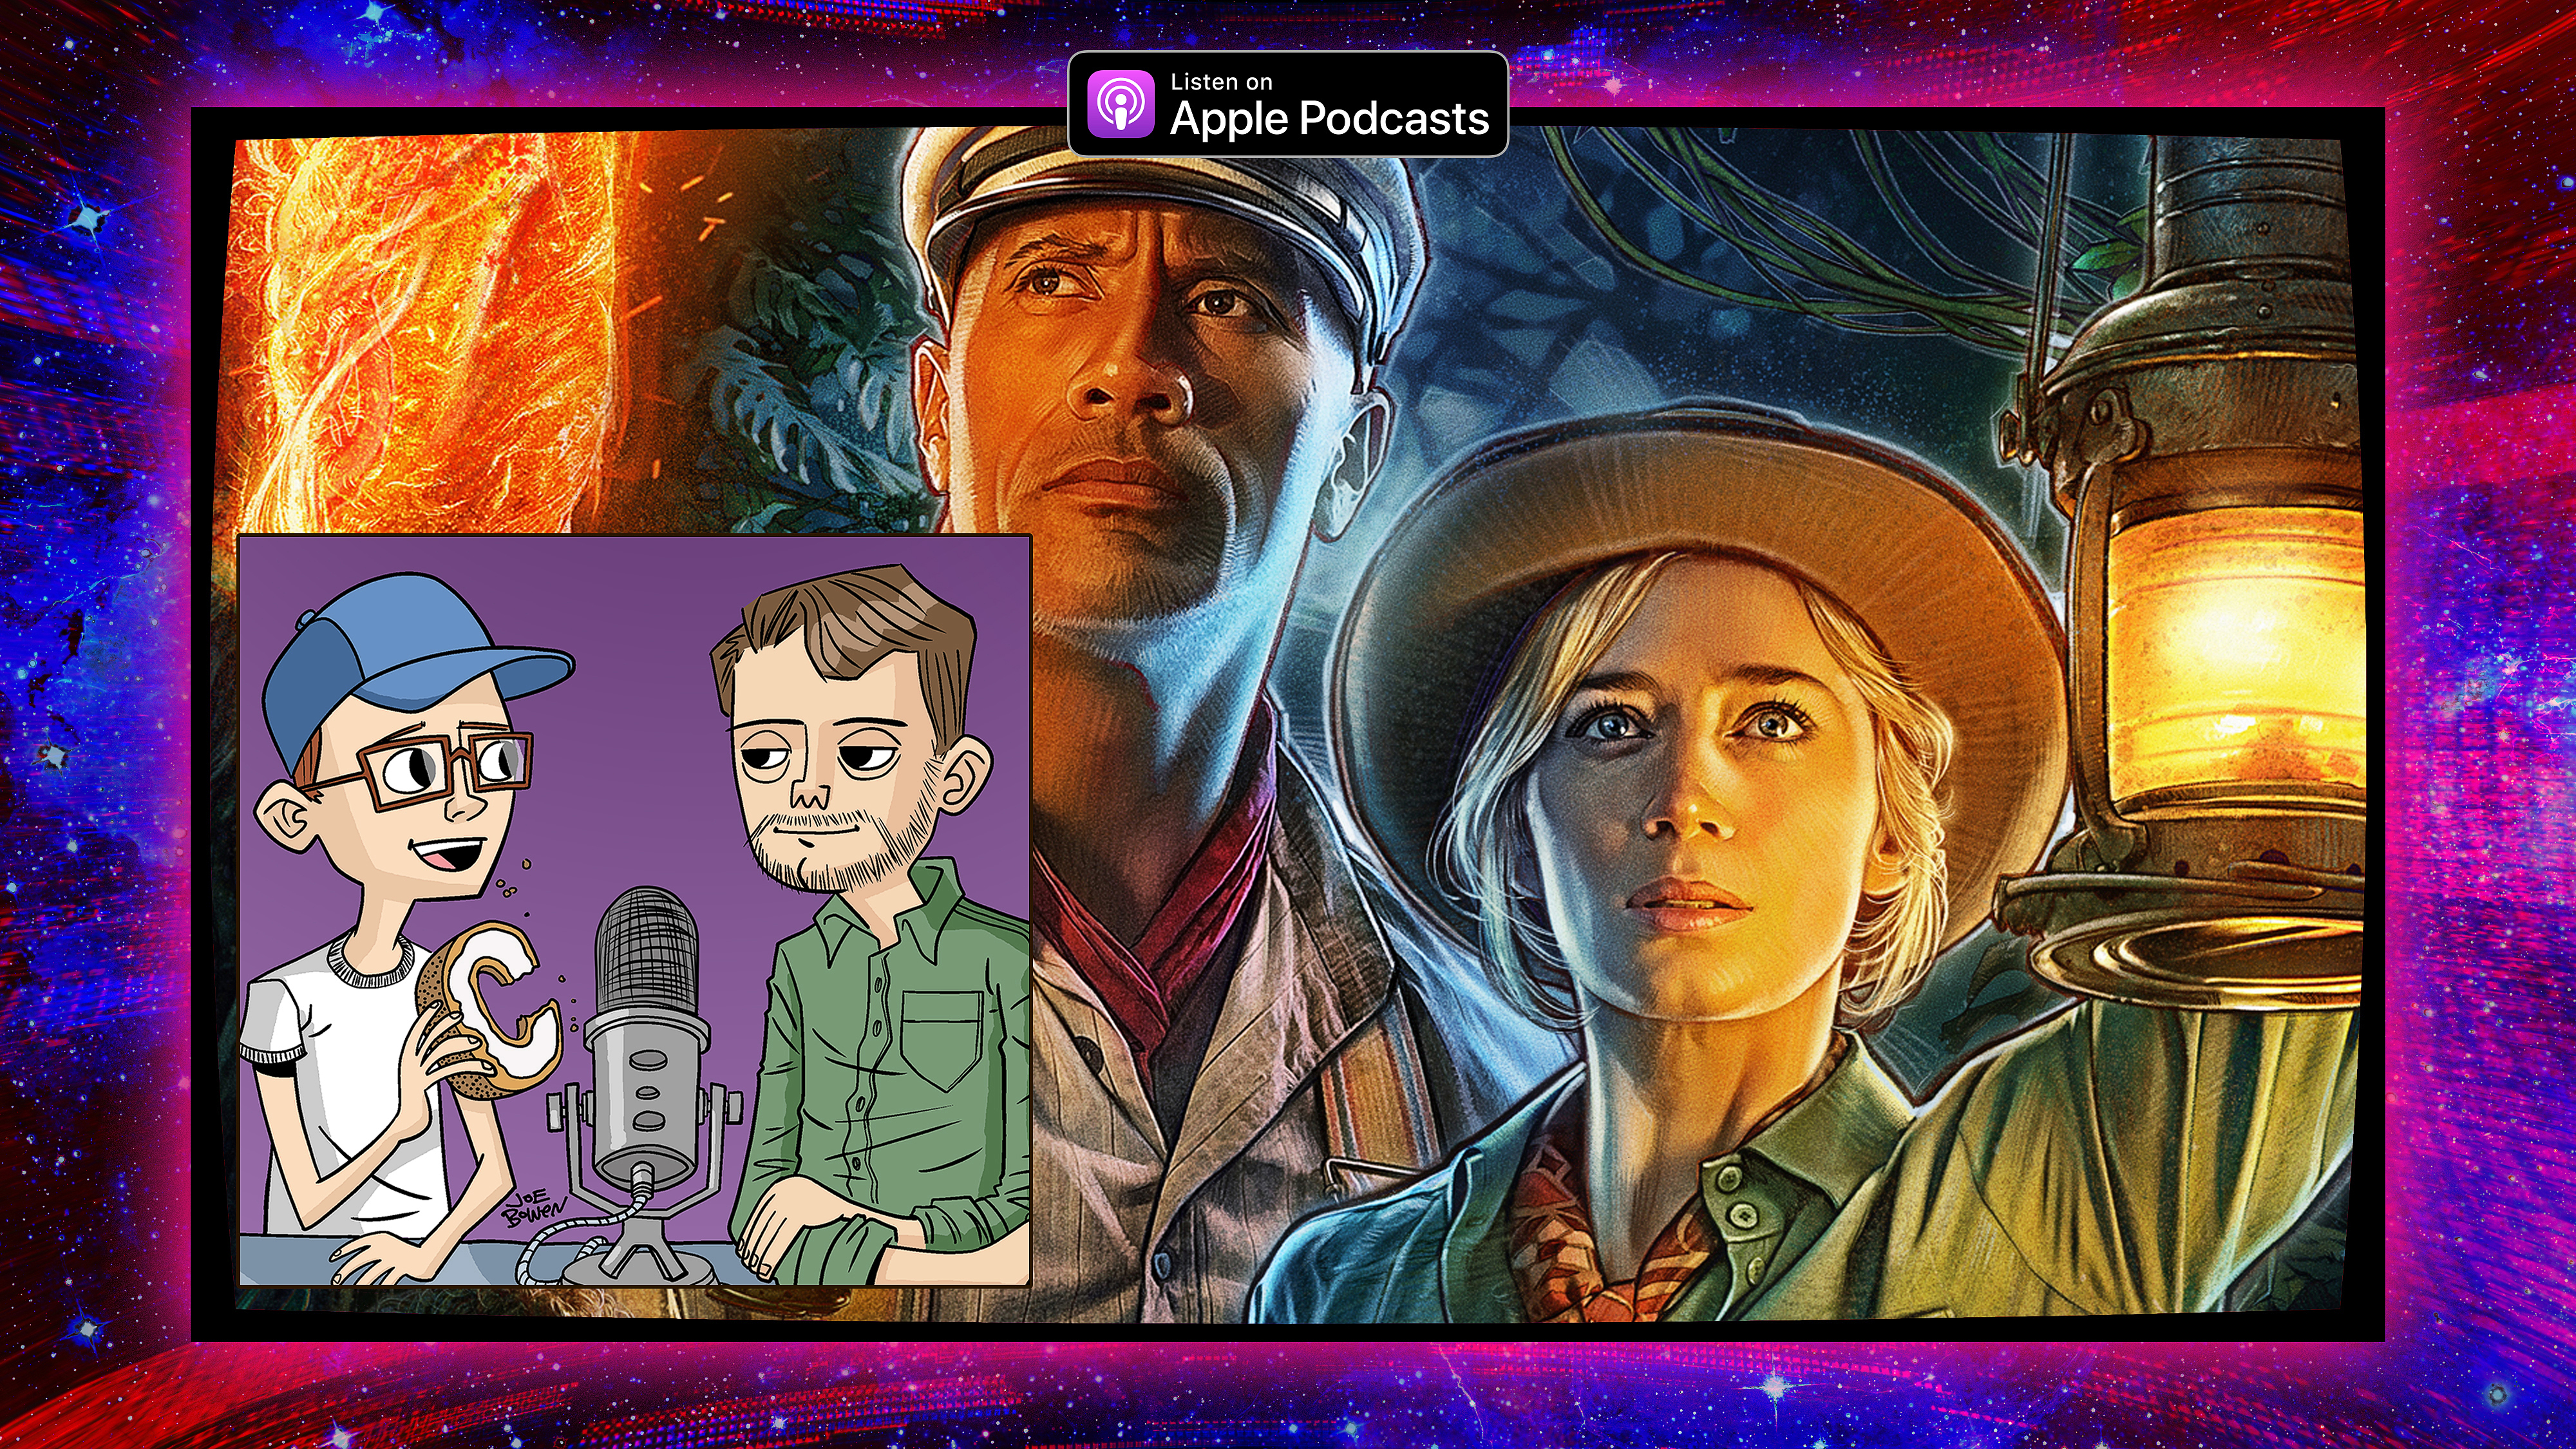 Graphic featuring the film poster for 'Jungle Cruise' and a cartoon of podcasters